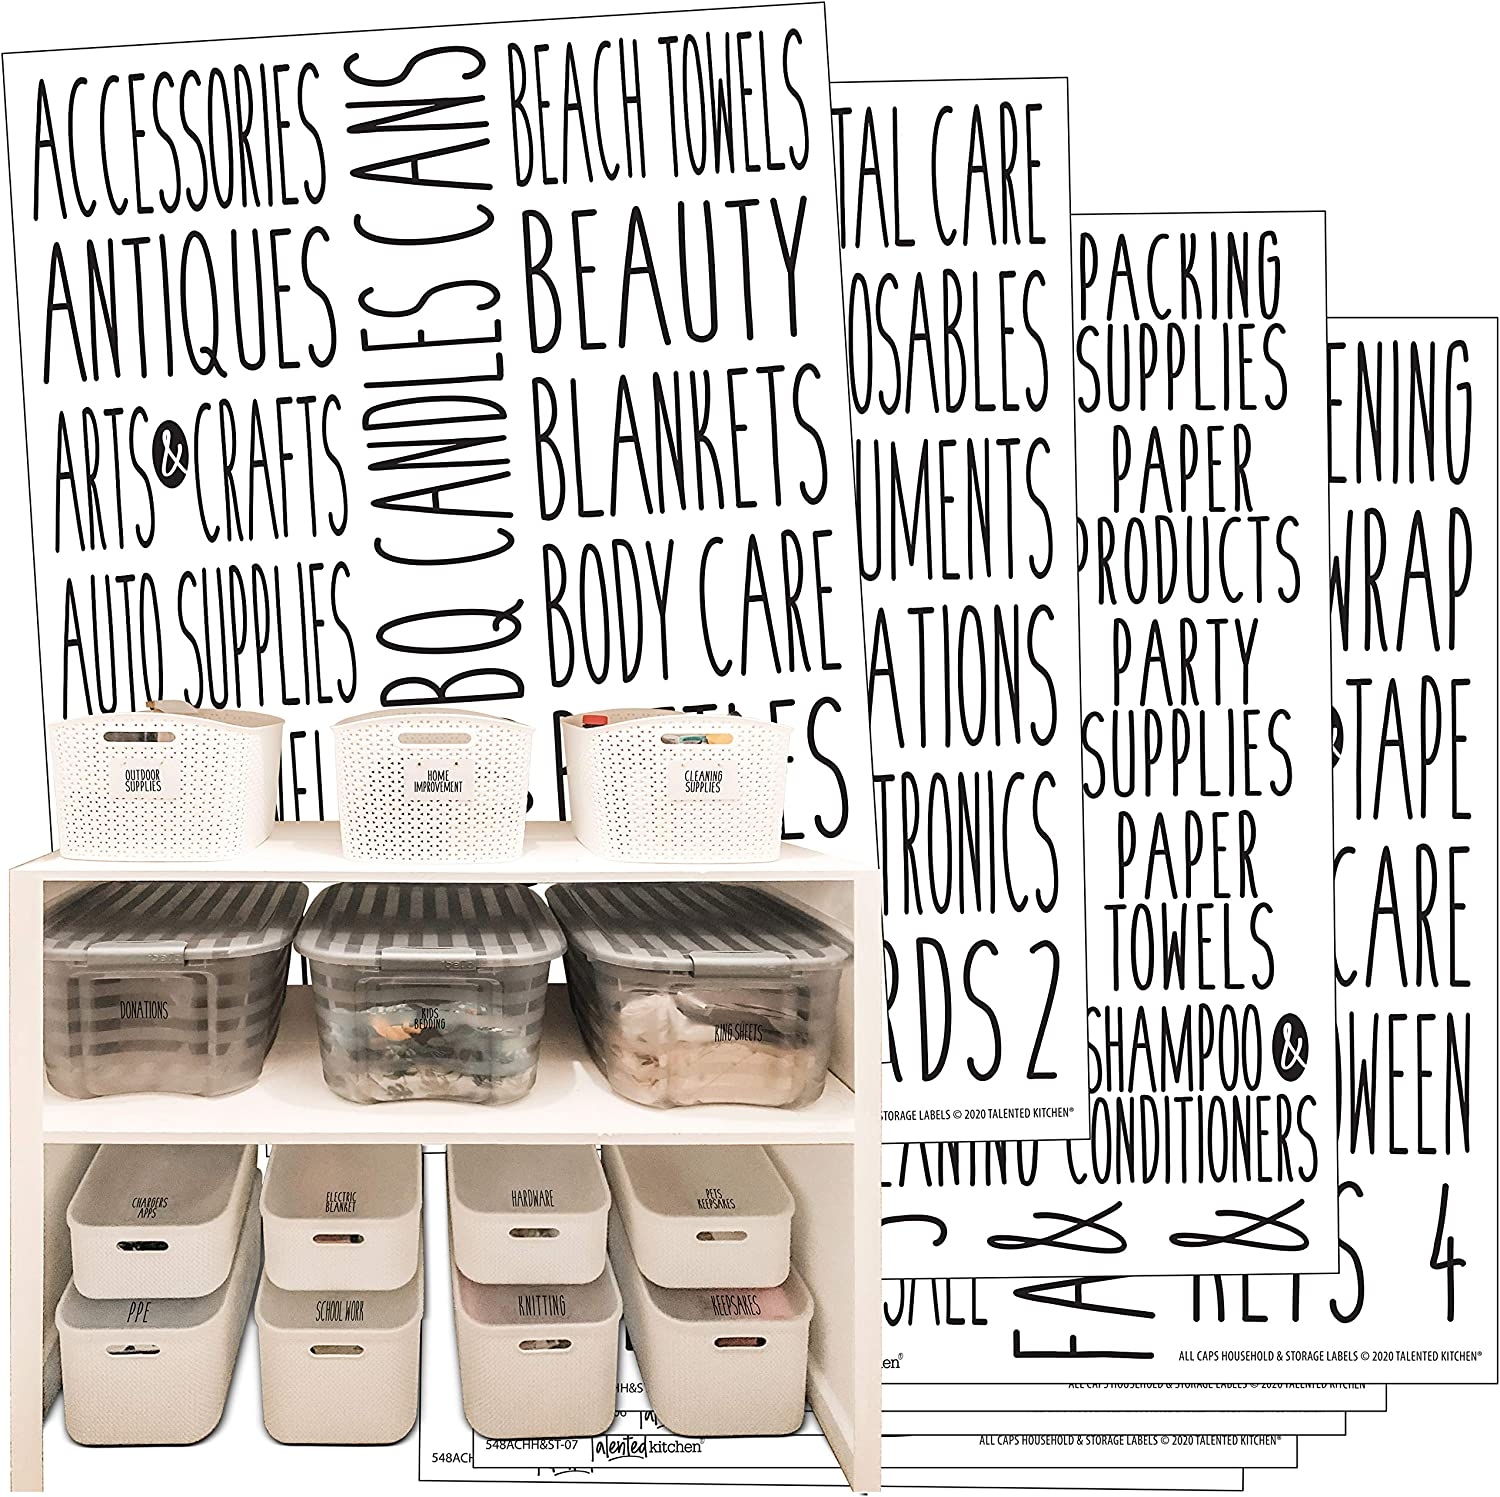 Talented Kitchen 138 Household & Storage Organization Labels. All Caps Black Preprinted Labels. Water Resistant Black on Clear Stickers. Bins, Boxes Organization System Labels. Holiday, Home Essential